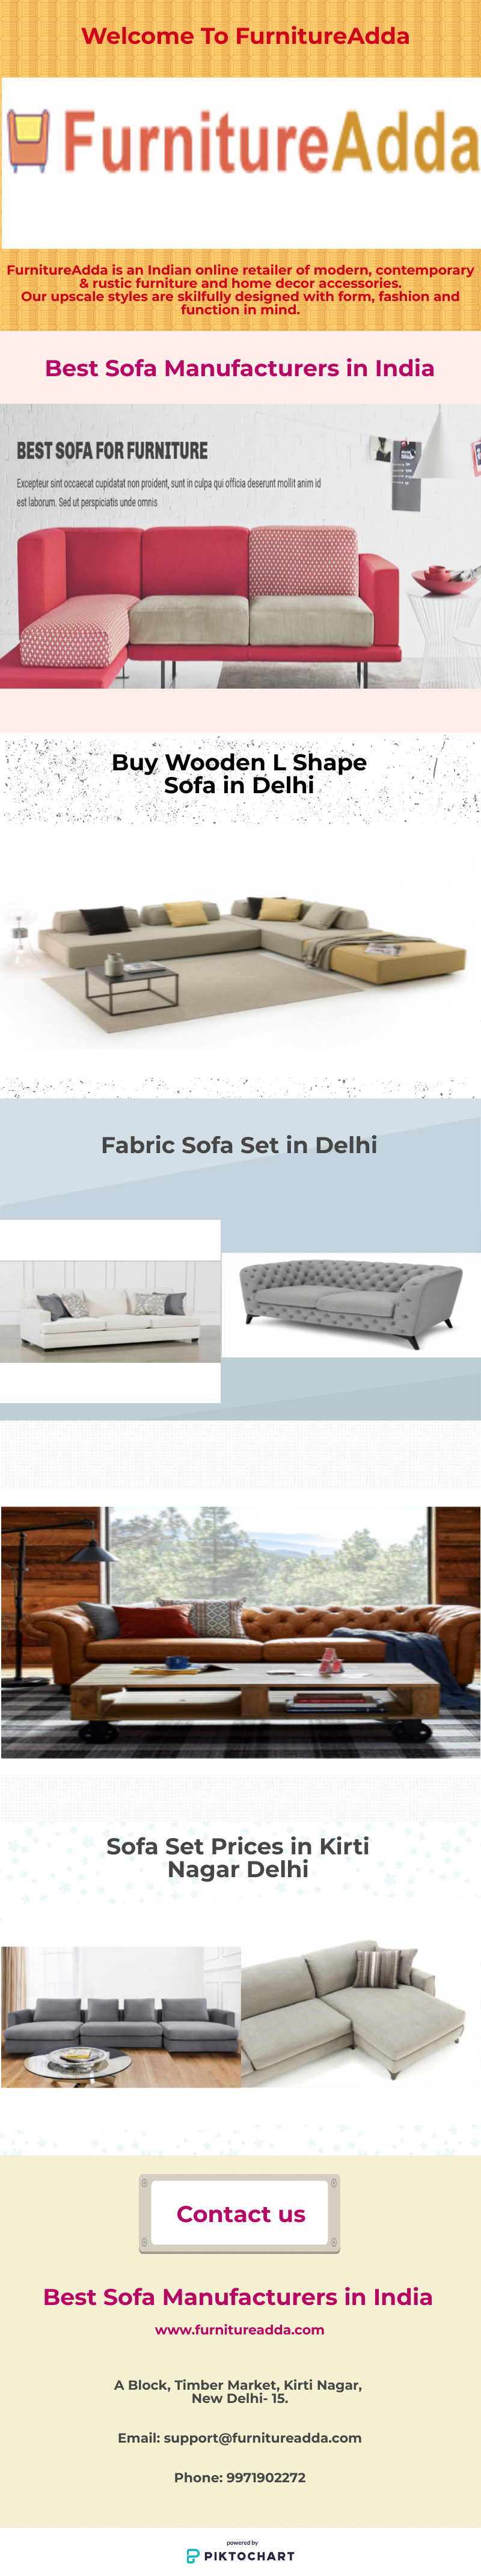 If You Are Looking Best Sofa Manufacturers In India Then You Are On The Right Place Here Furnitureadda Is An Online Furniture Store To Offer In 2020 Sofa Manufacturers